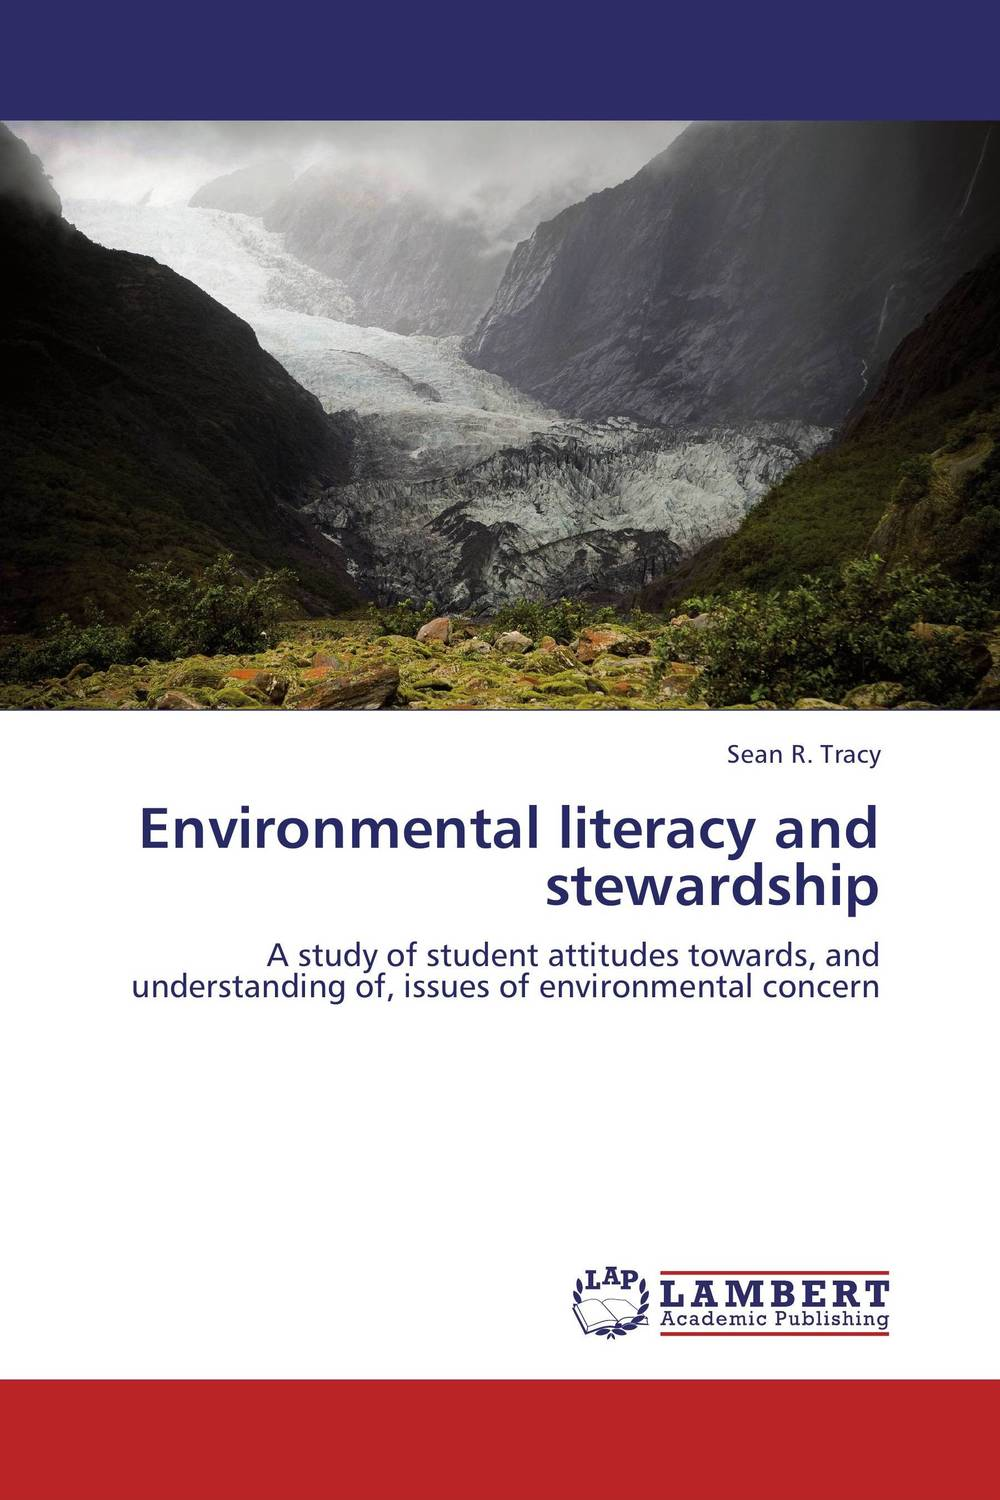 Environmental literacy and stewardship environmental literacy of undergraduate college students